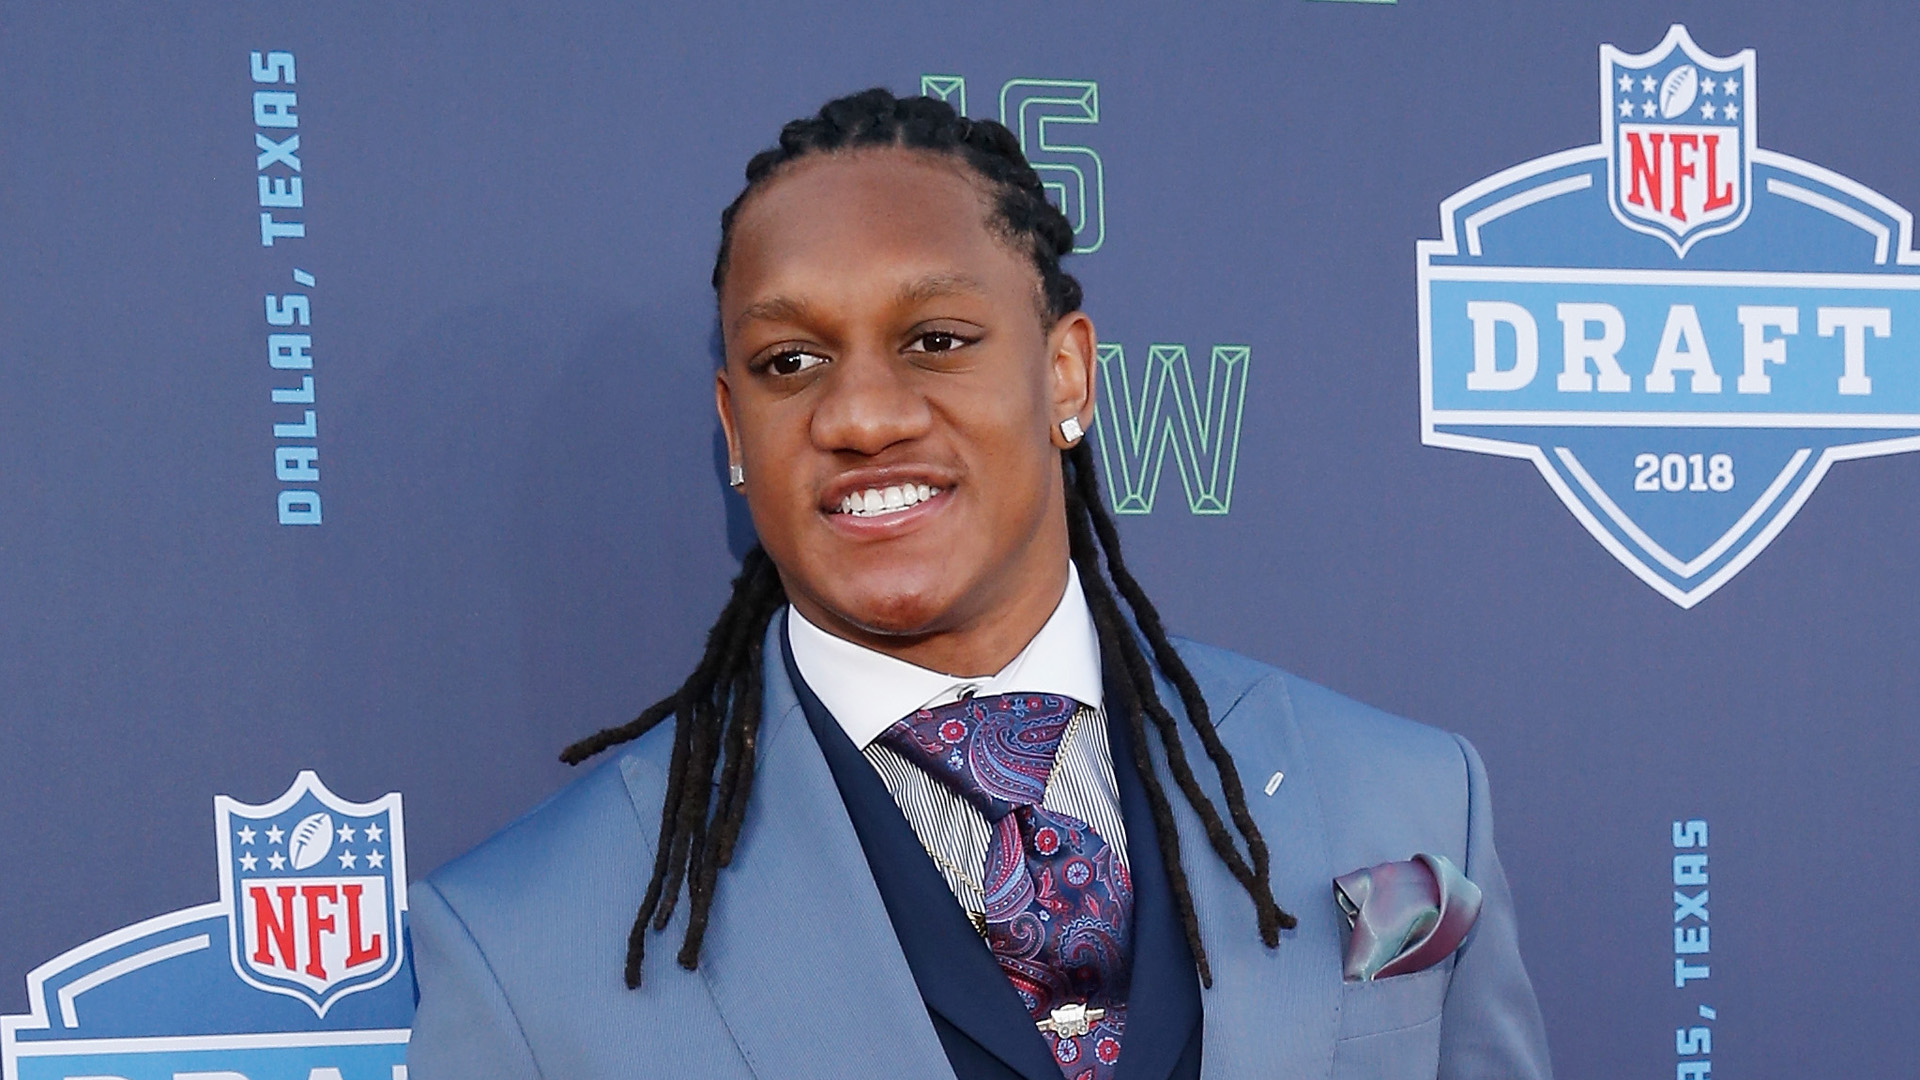 Bills trade up, draft LB Tremaine Edmunds 16th overall